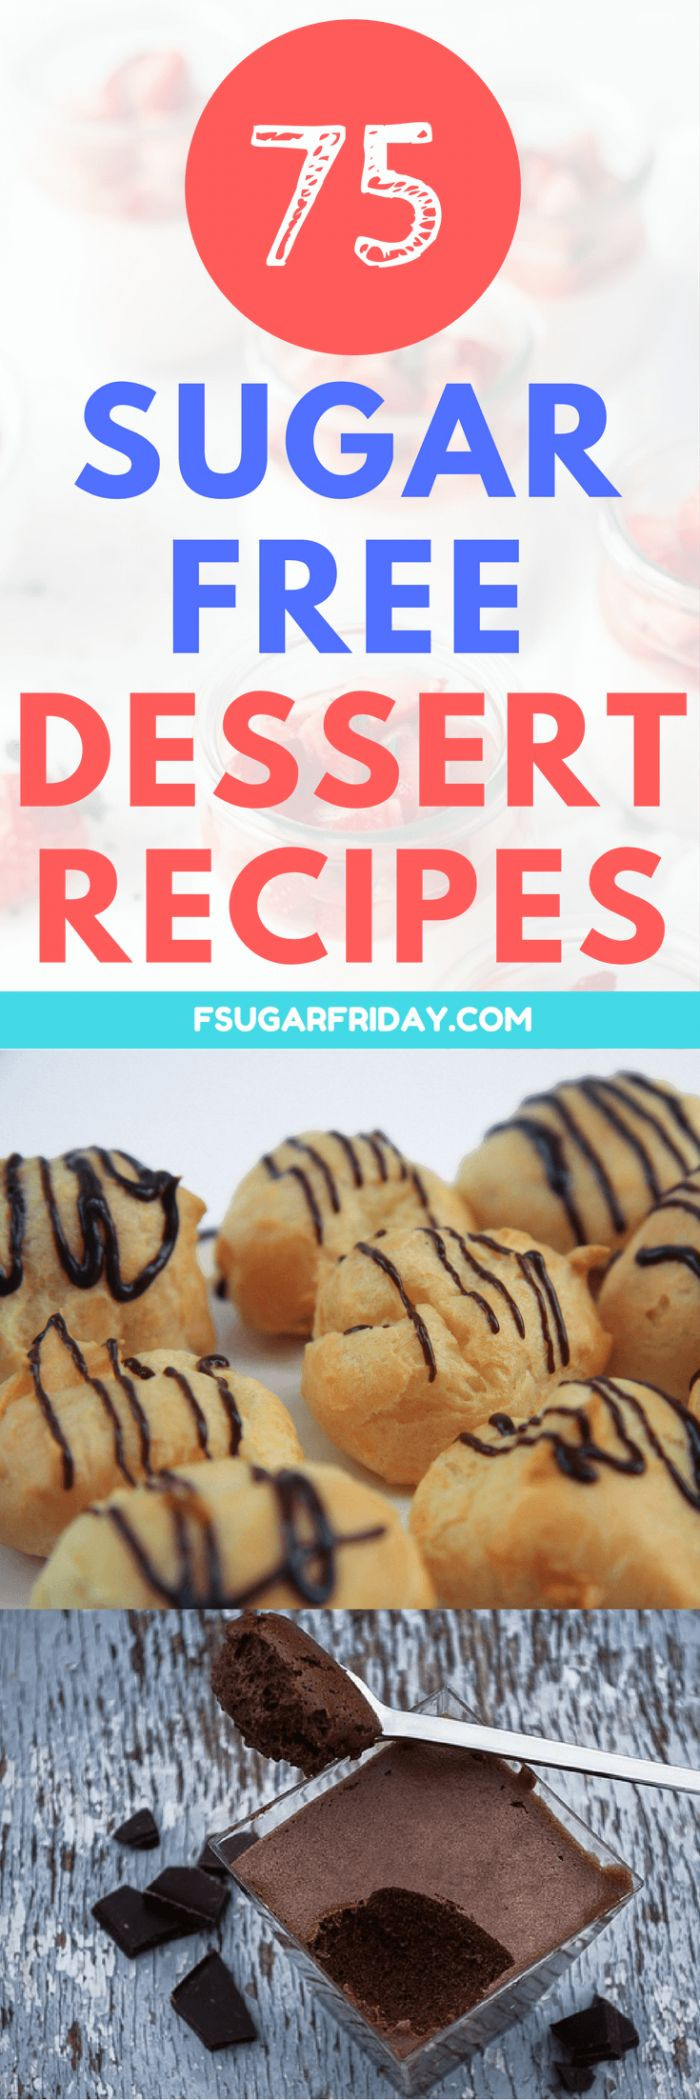 Sugar Free Desserts To Buy  These sugar free dessert recipes are AMAZING If you re